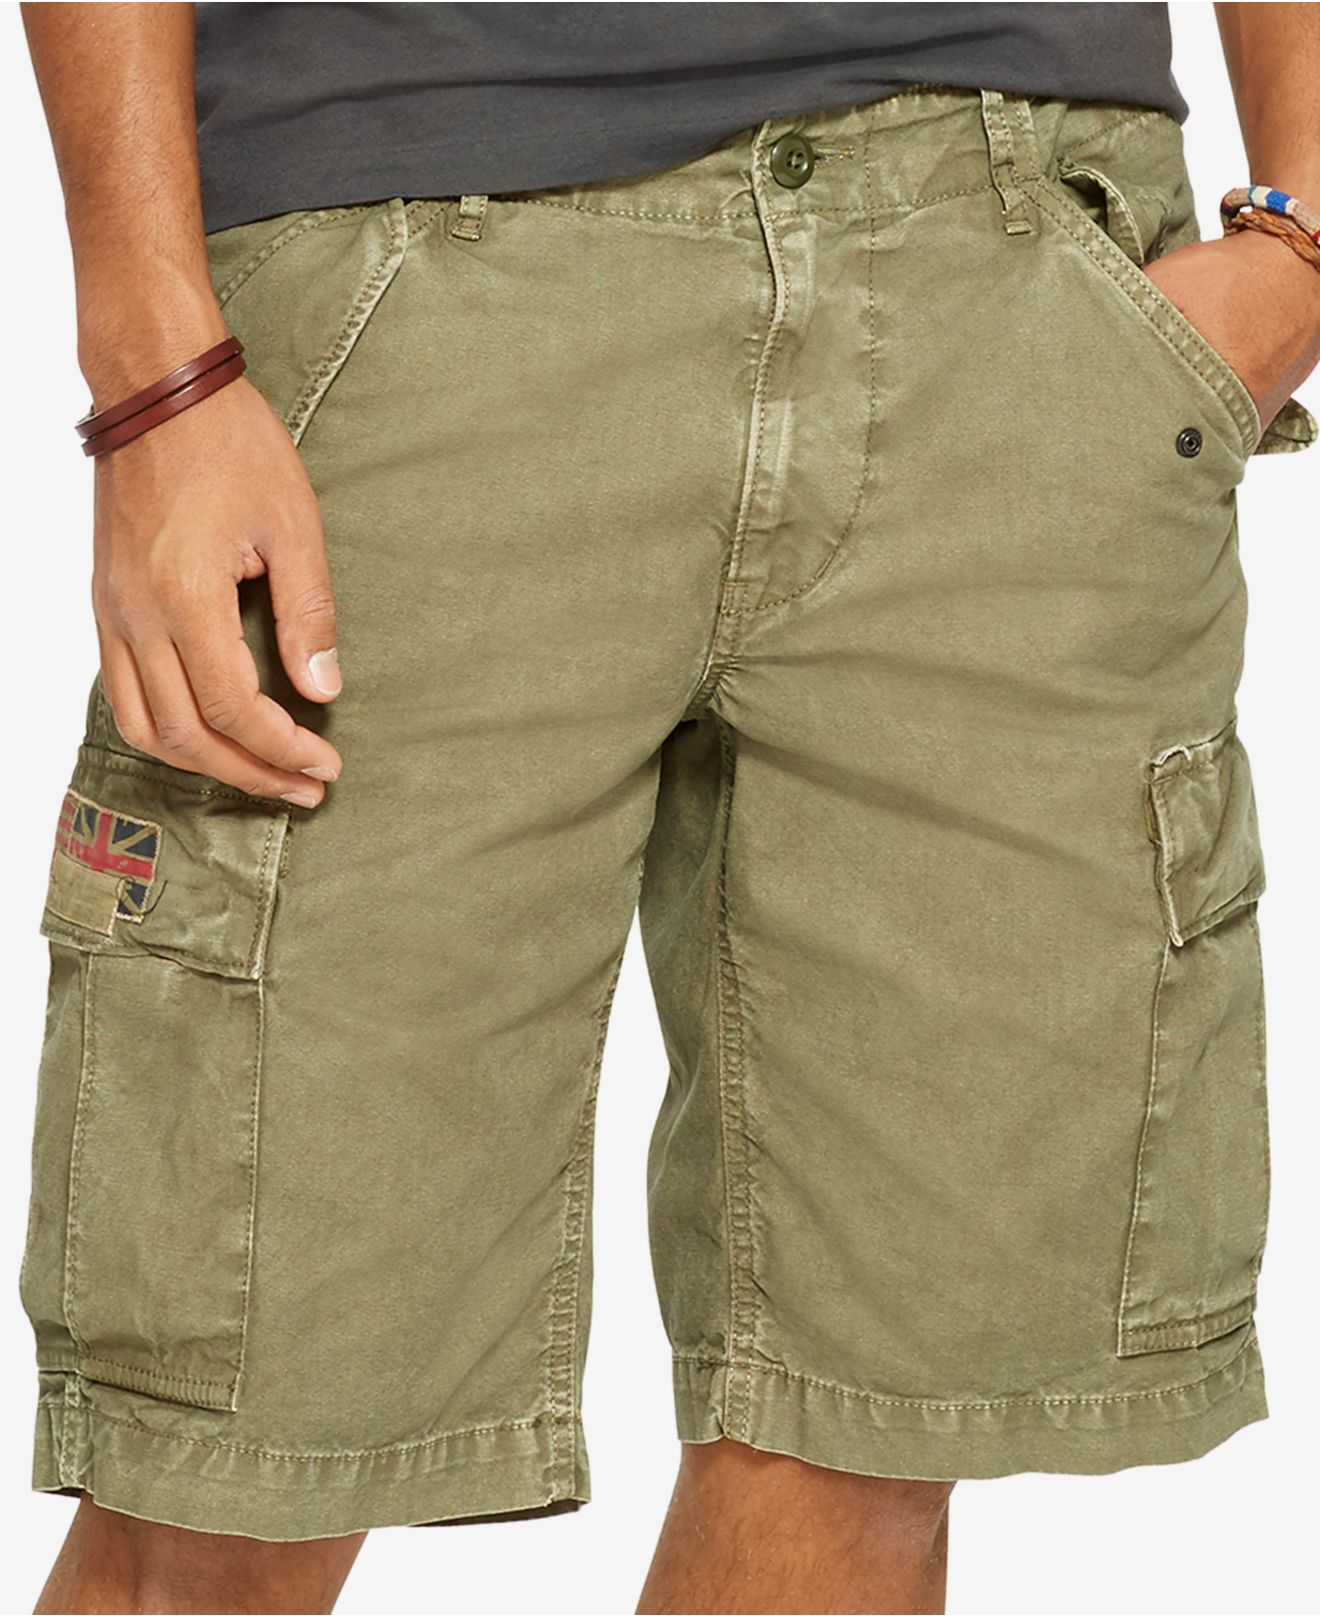 Find cargo supply shorts at ShopStyle. Shop the latest collection of cargo supply shorts from the most popular stores - all in one place.